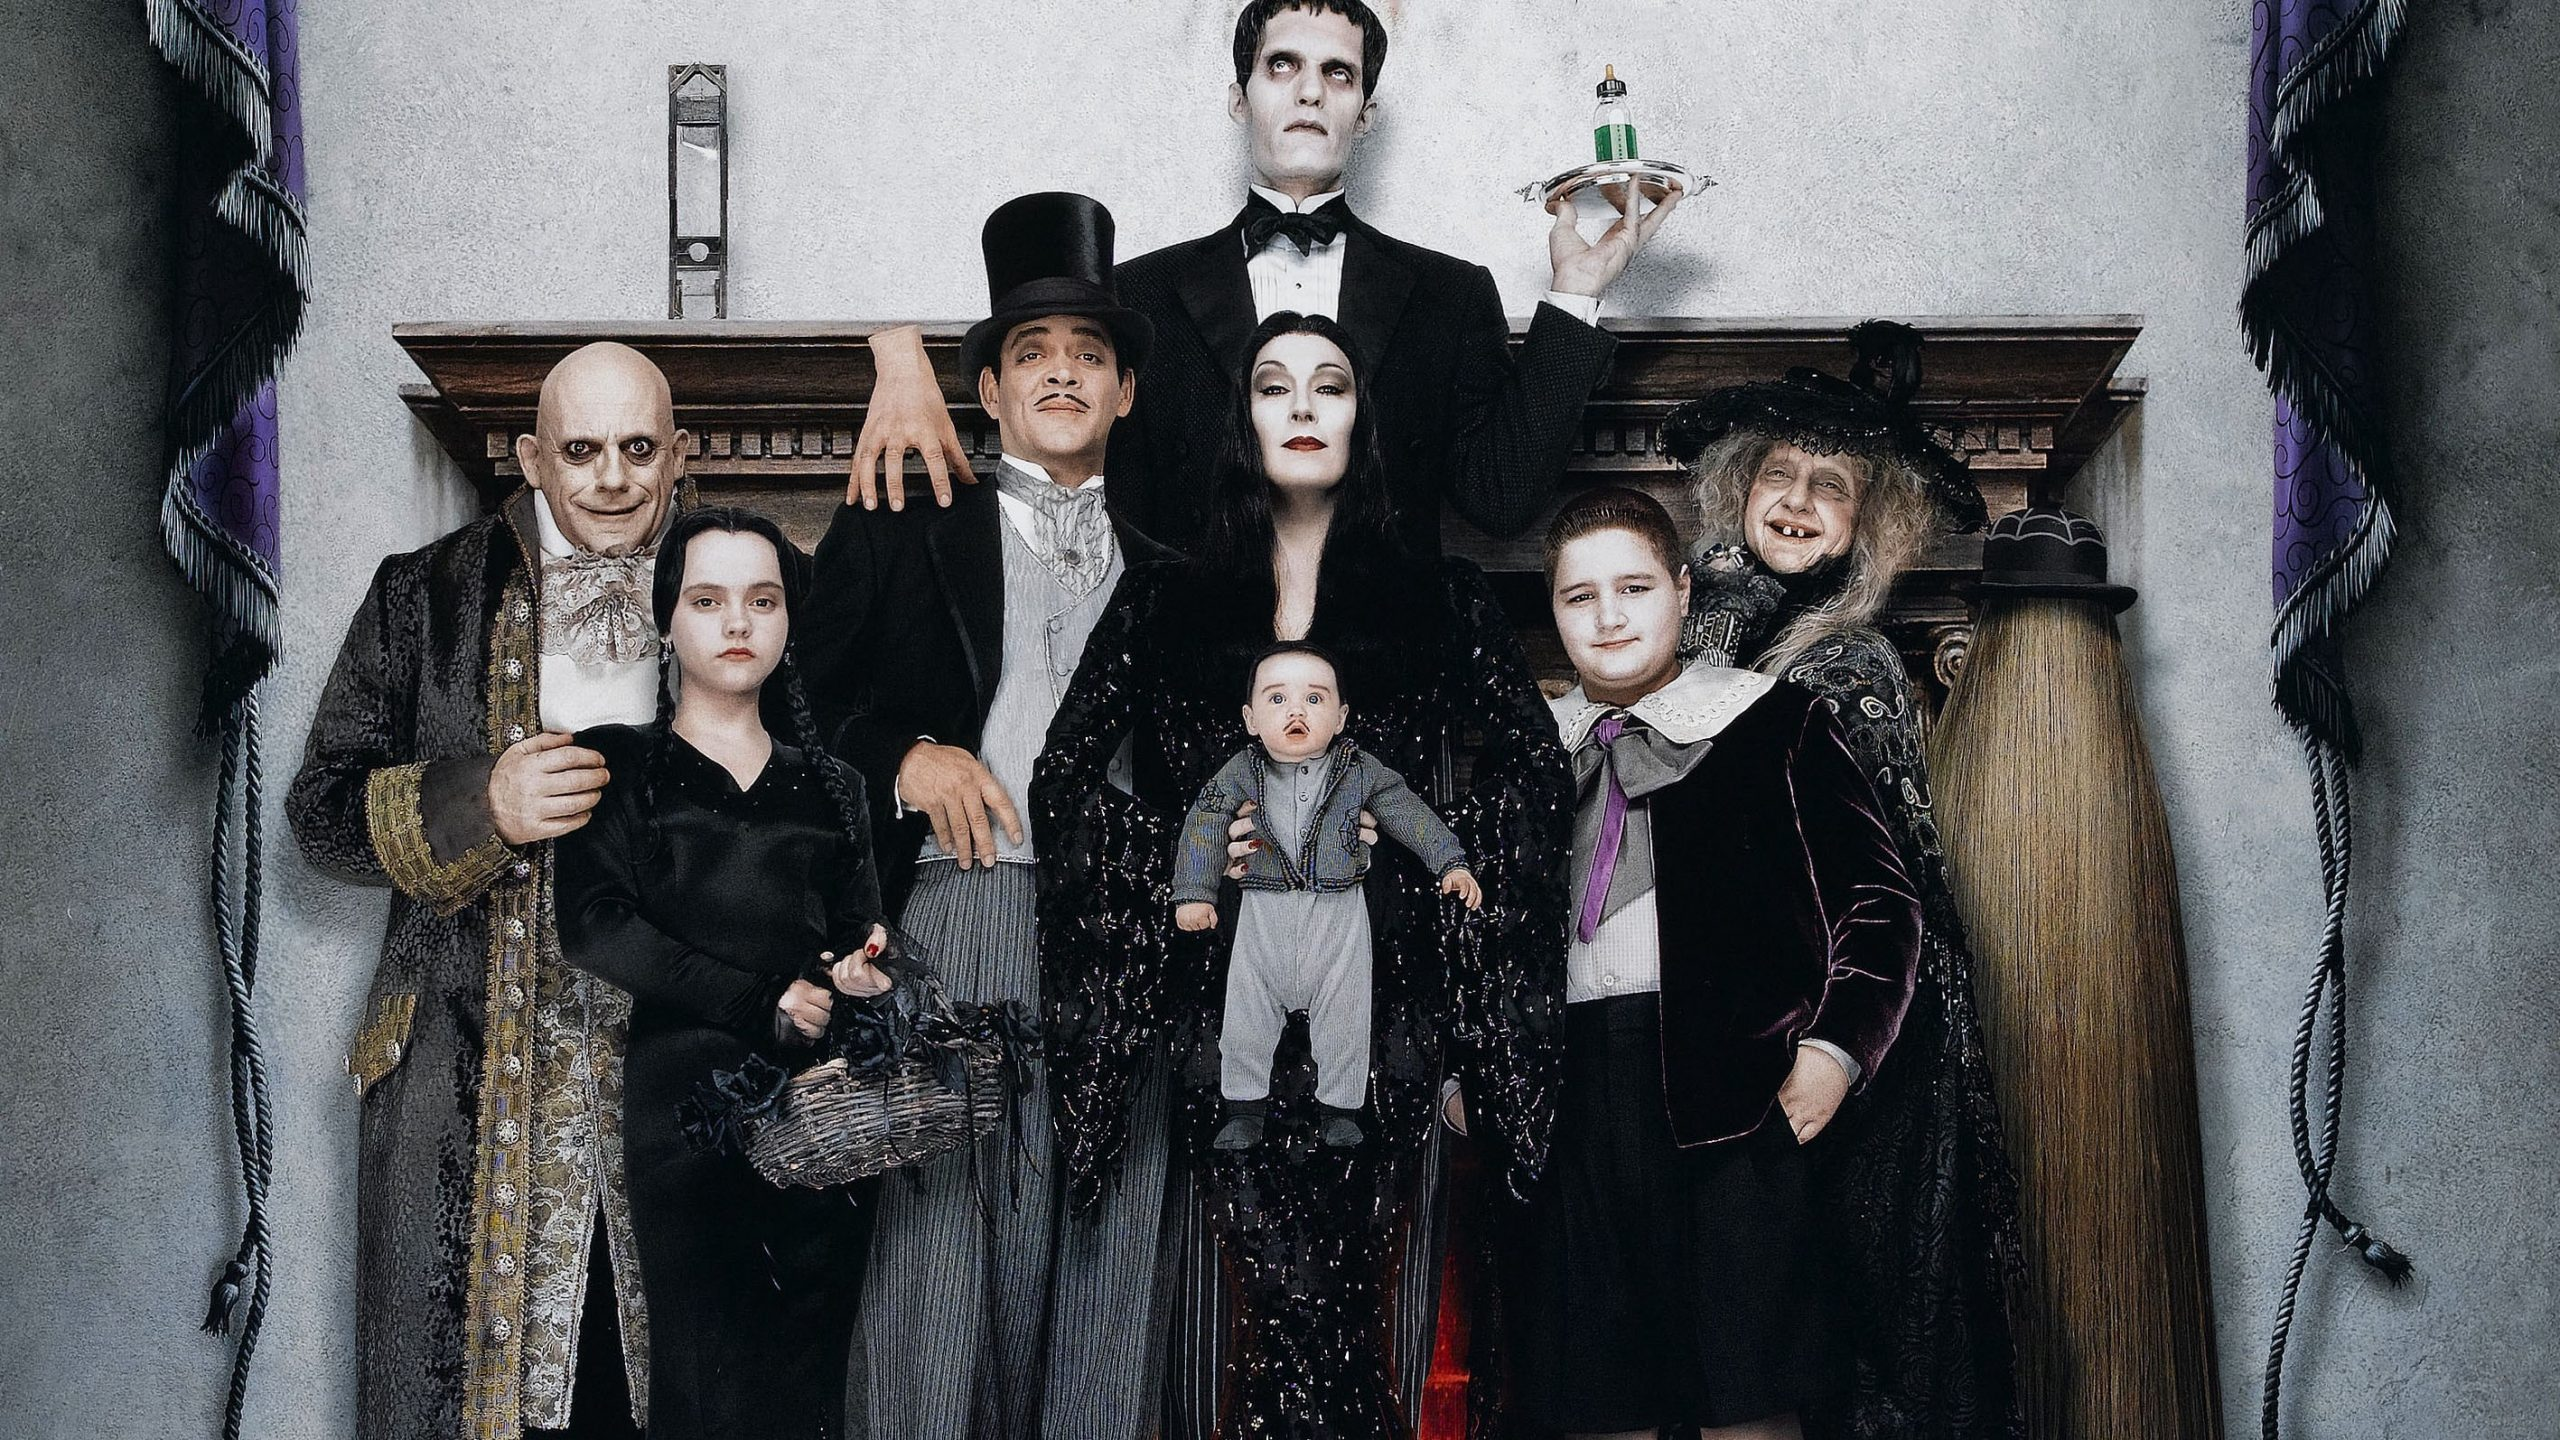 Adams Family Values (1993)